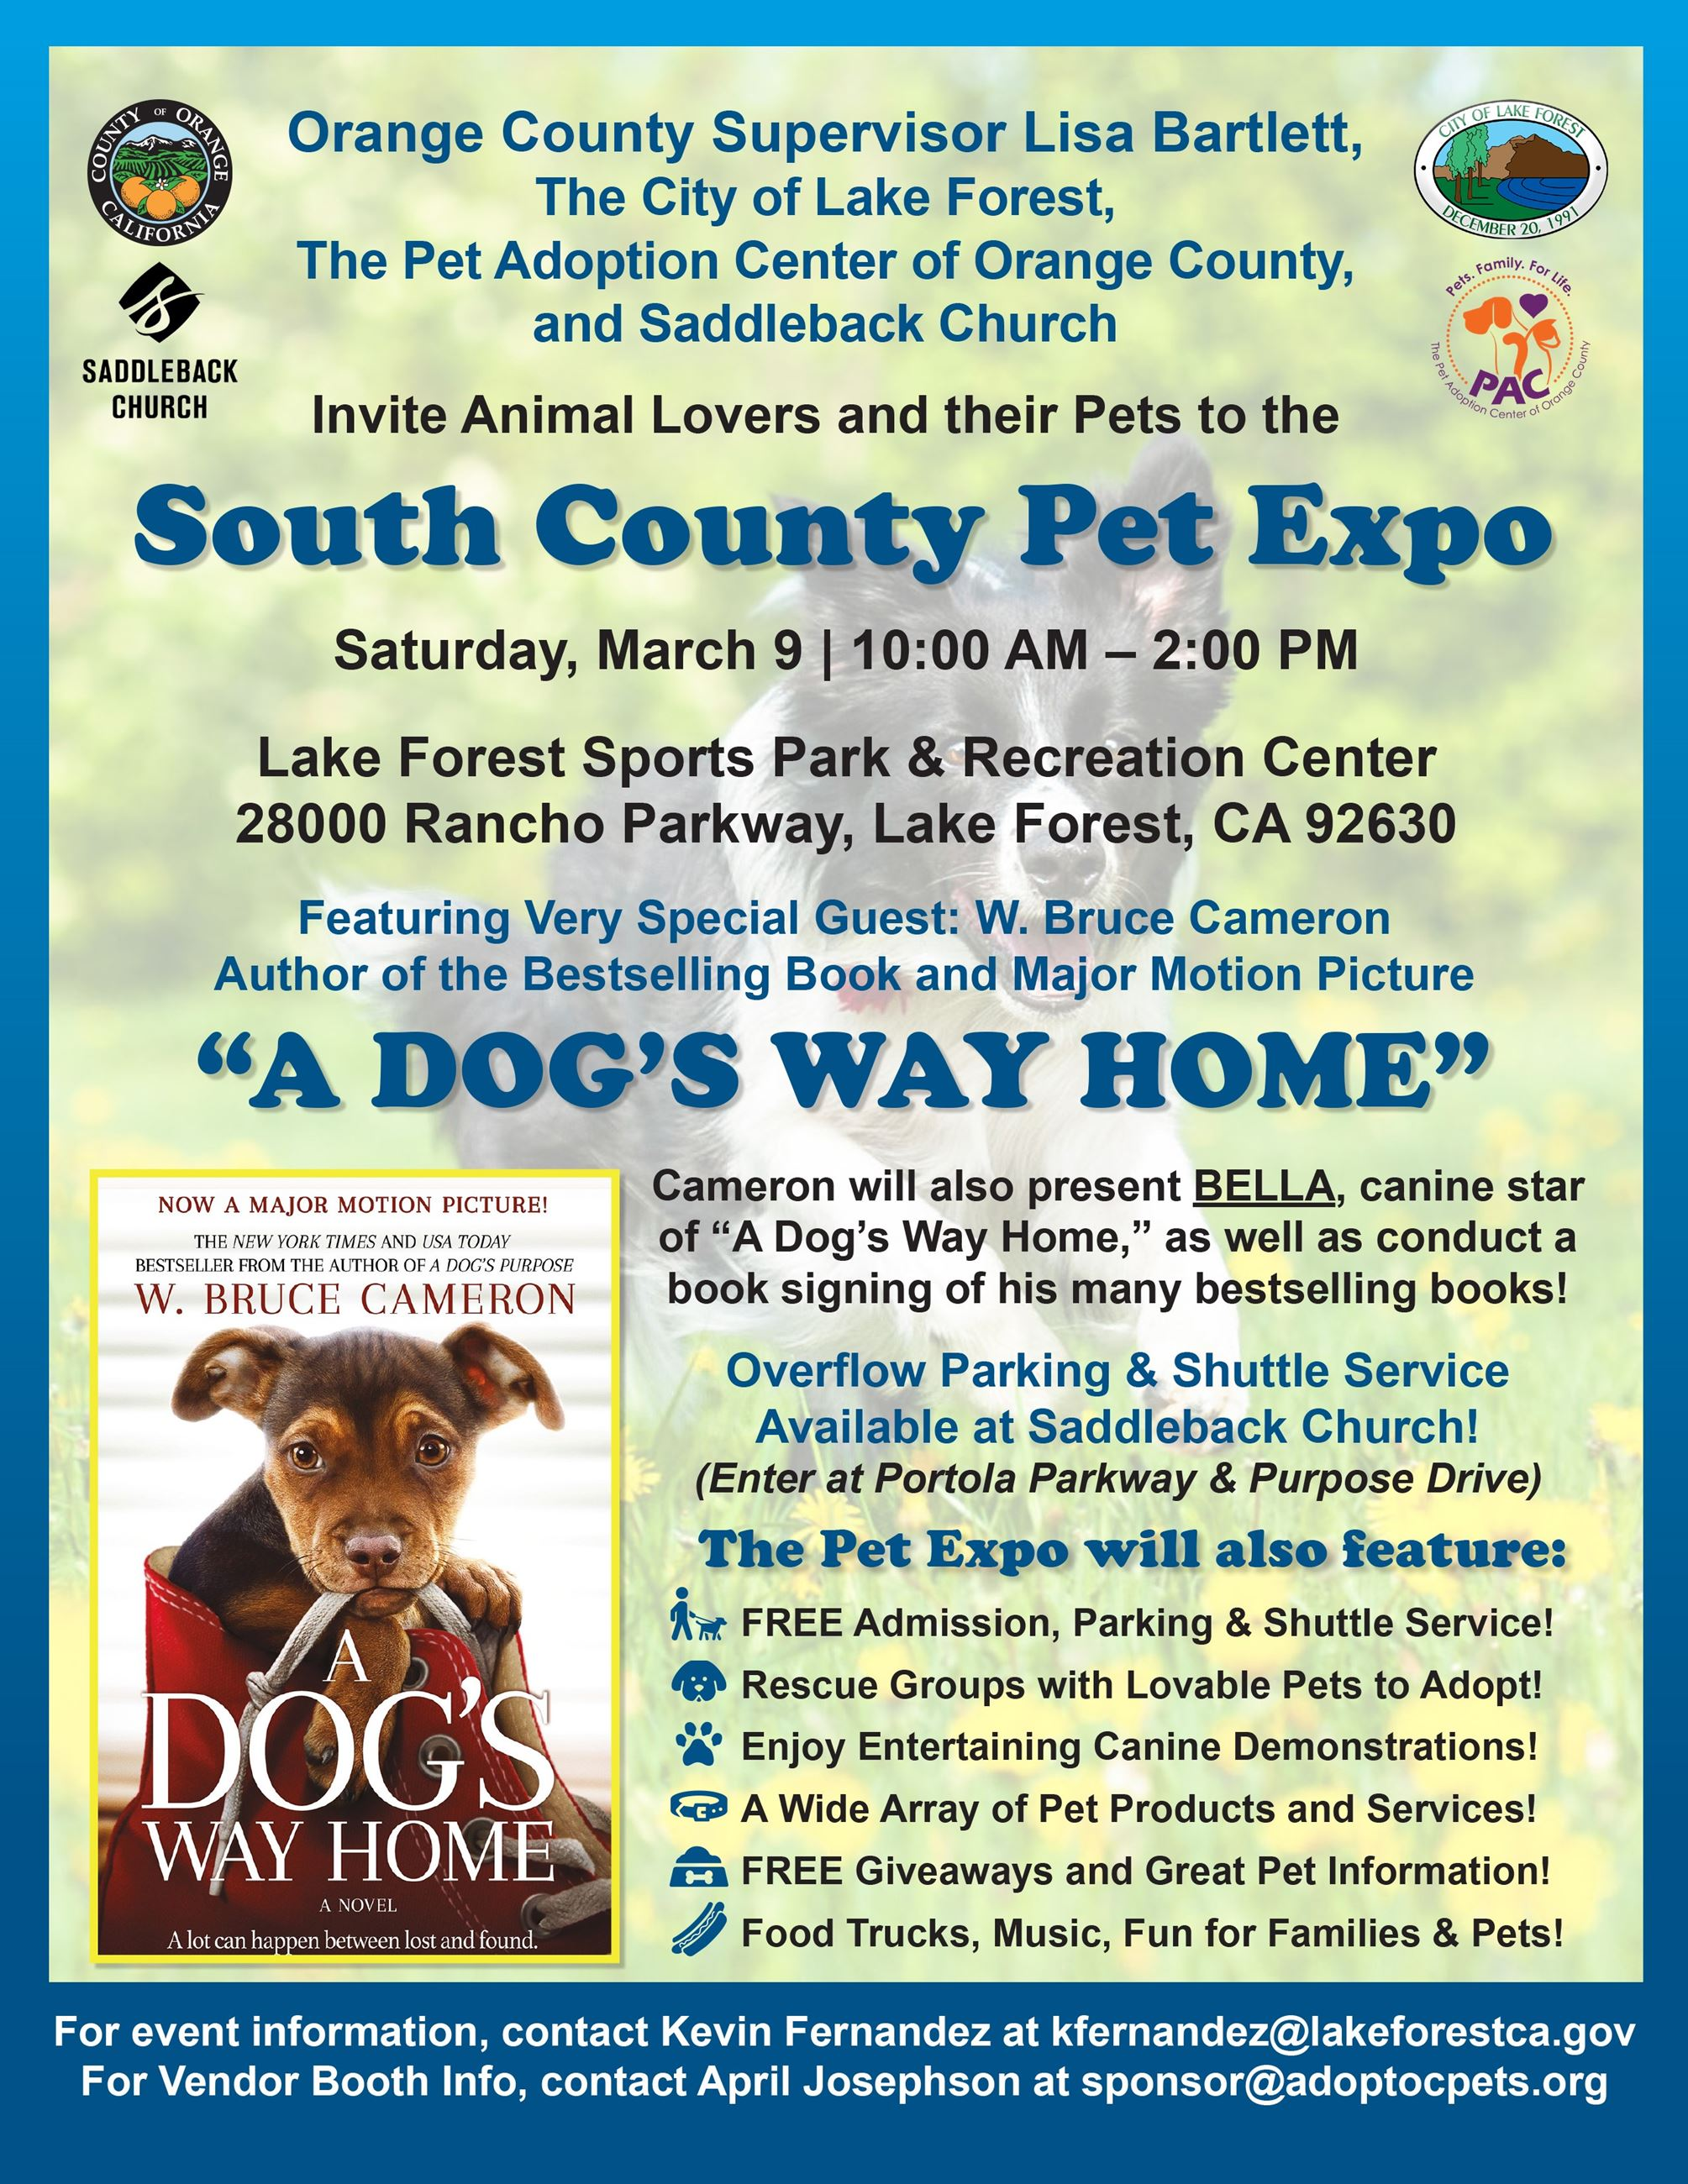 South County Pet Expo 3.9.19 (2)